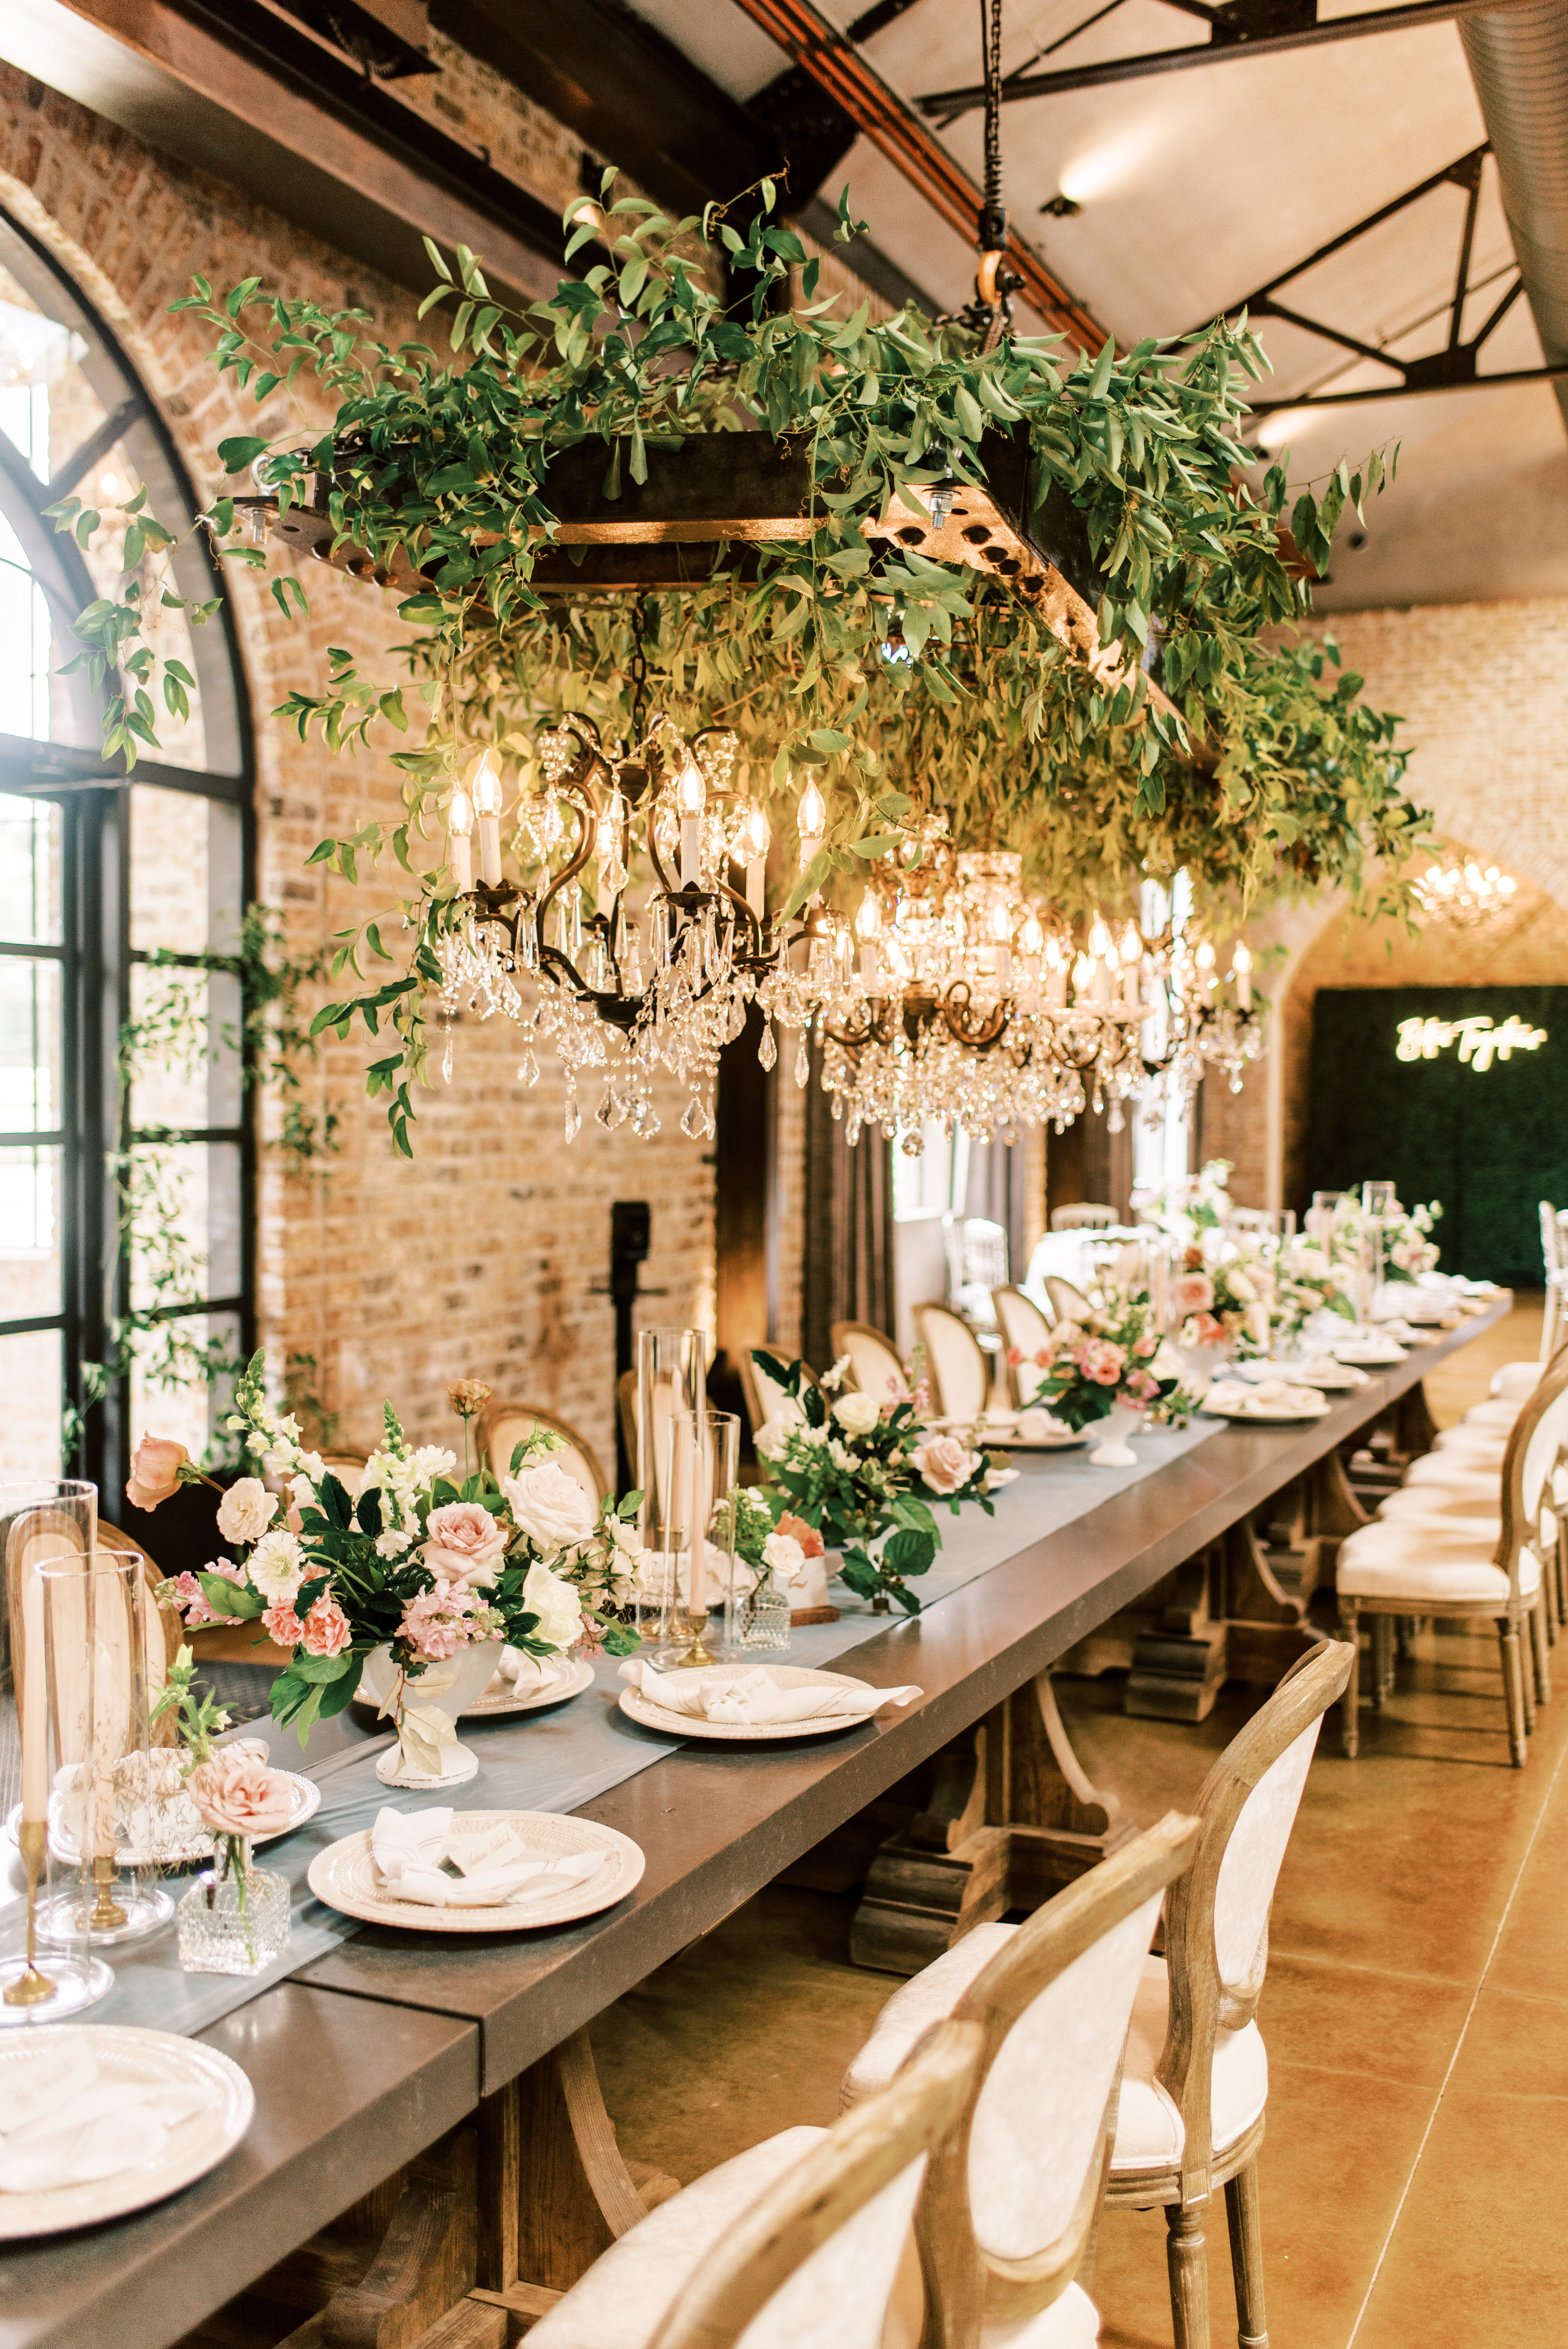 Style School | Incorporating the Venue Style into Your Wedding Design